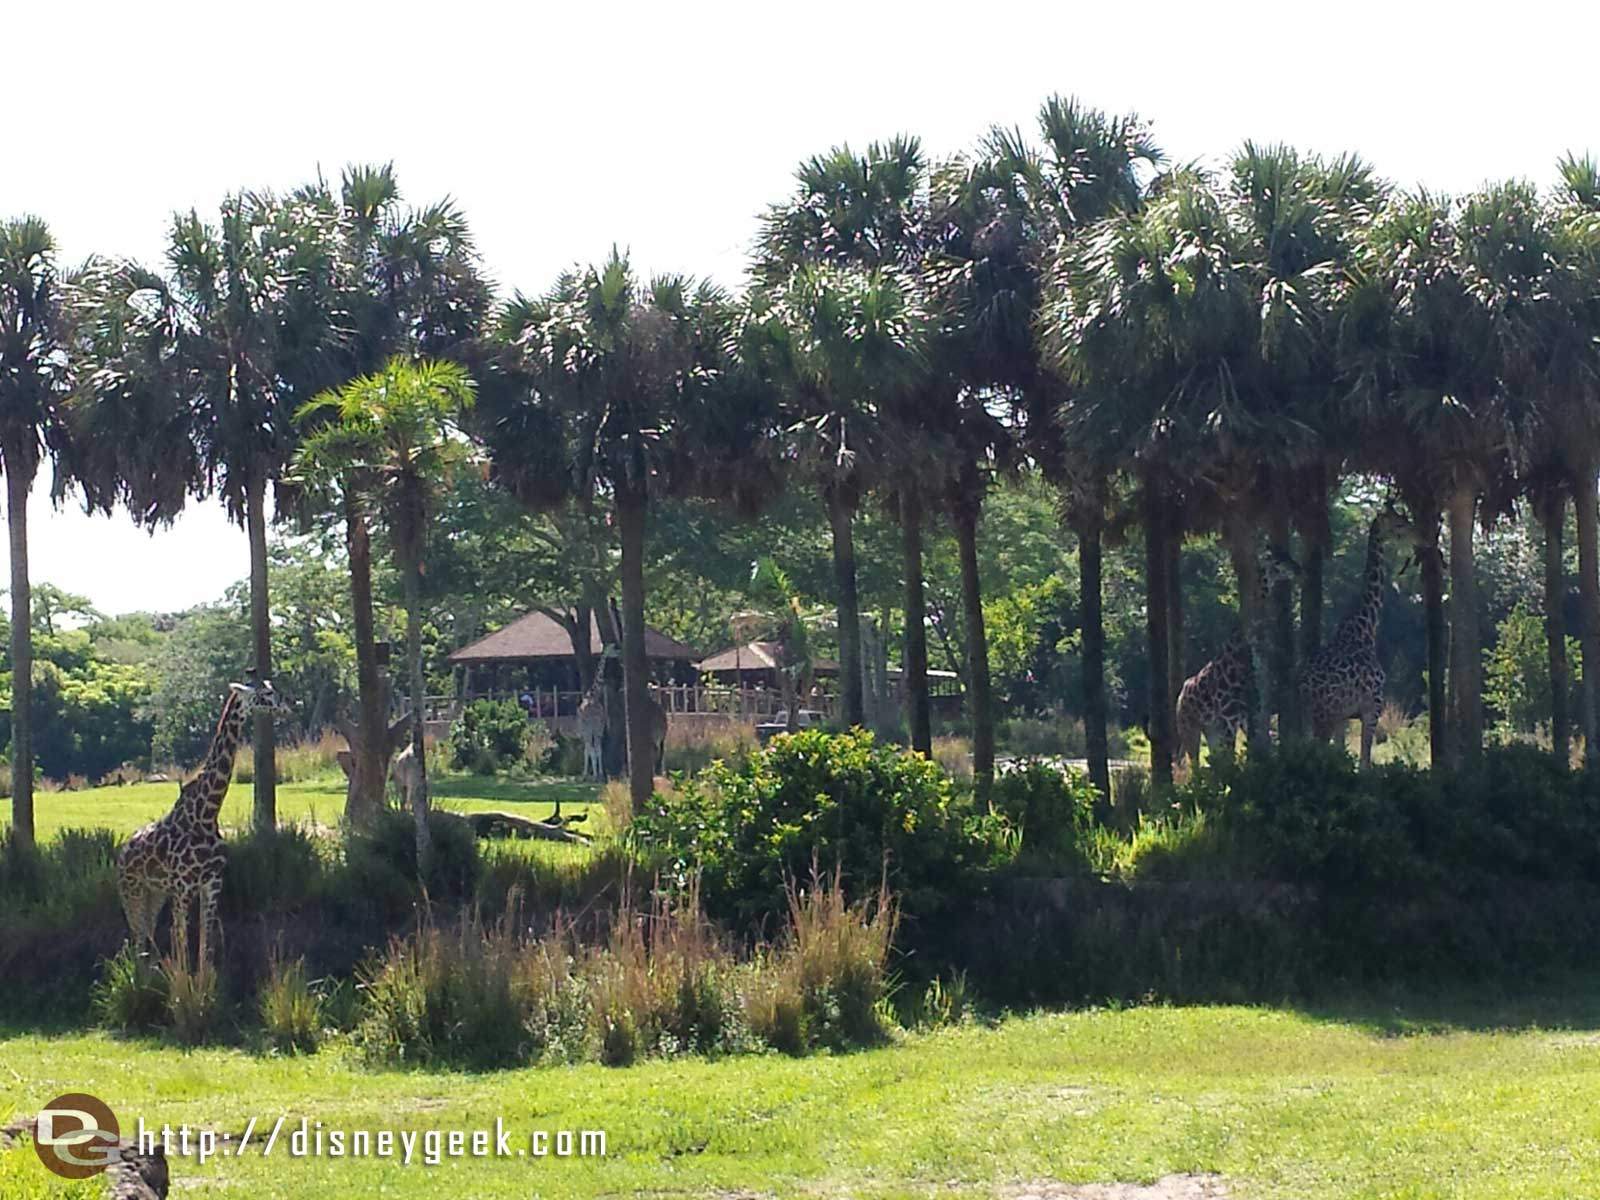 Giraffes on the Kilimanjaro Safari at Disney's Animal Kingdom